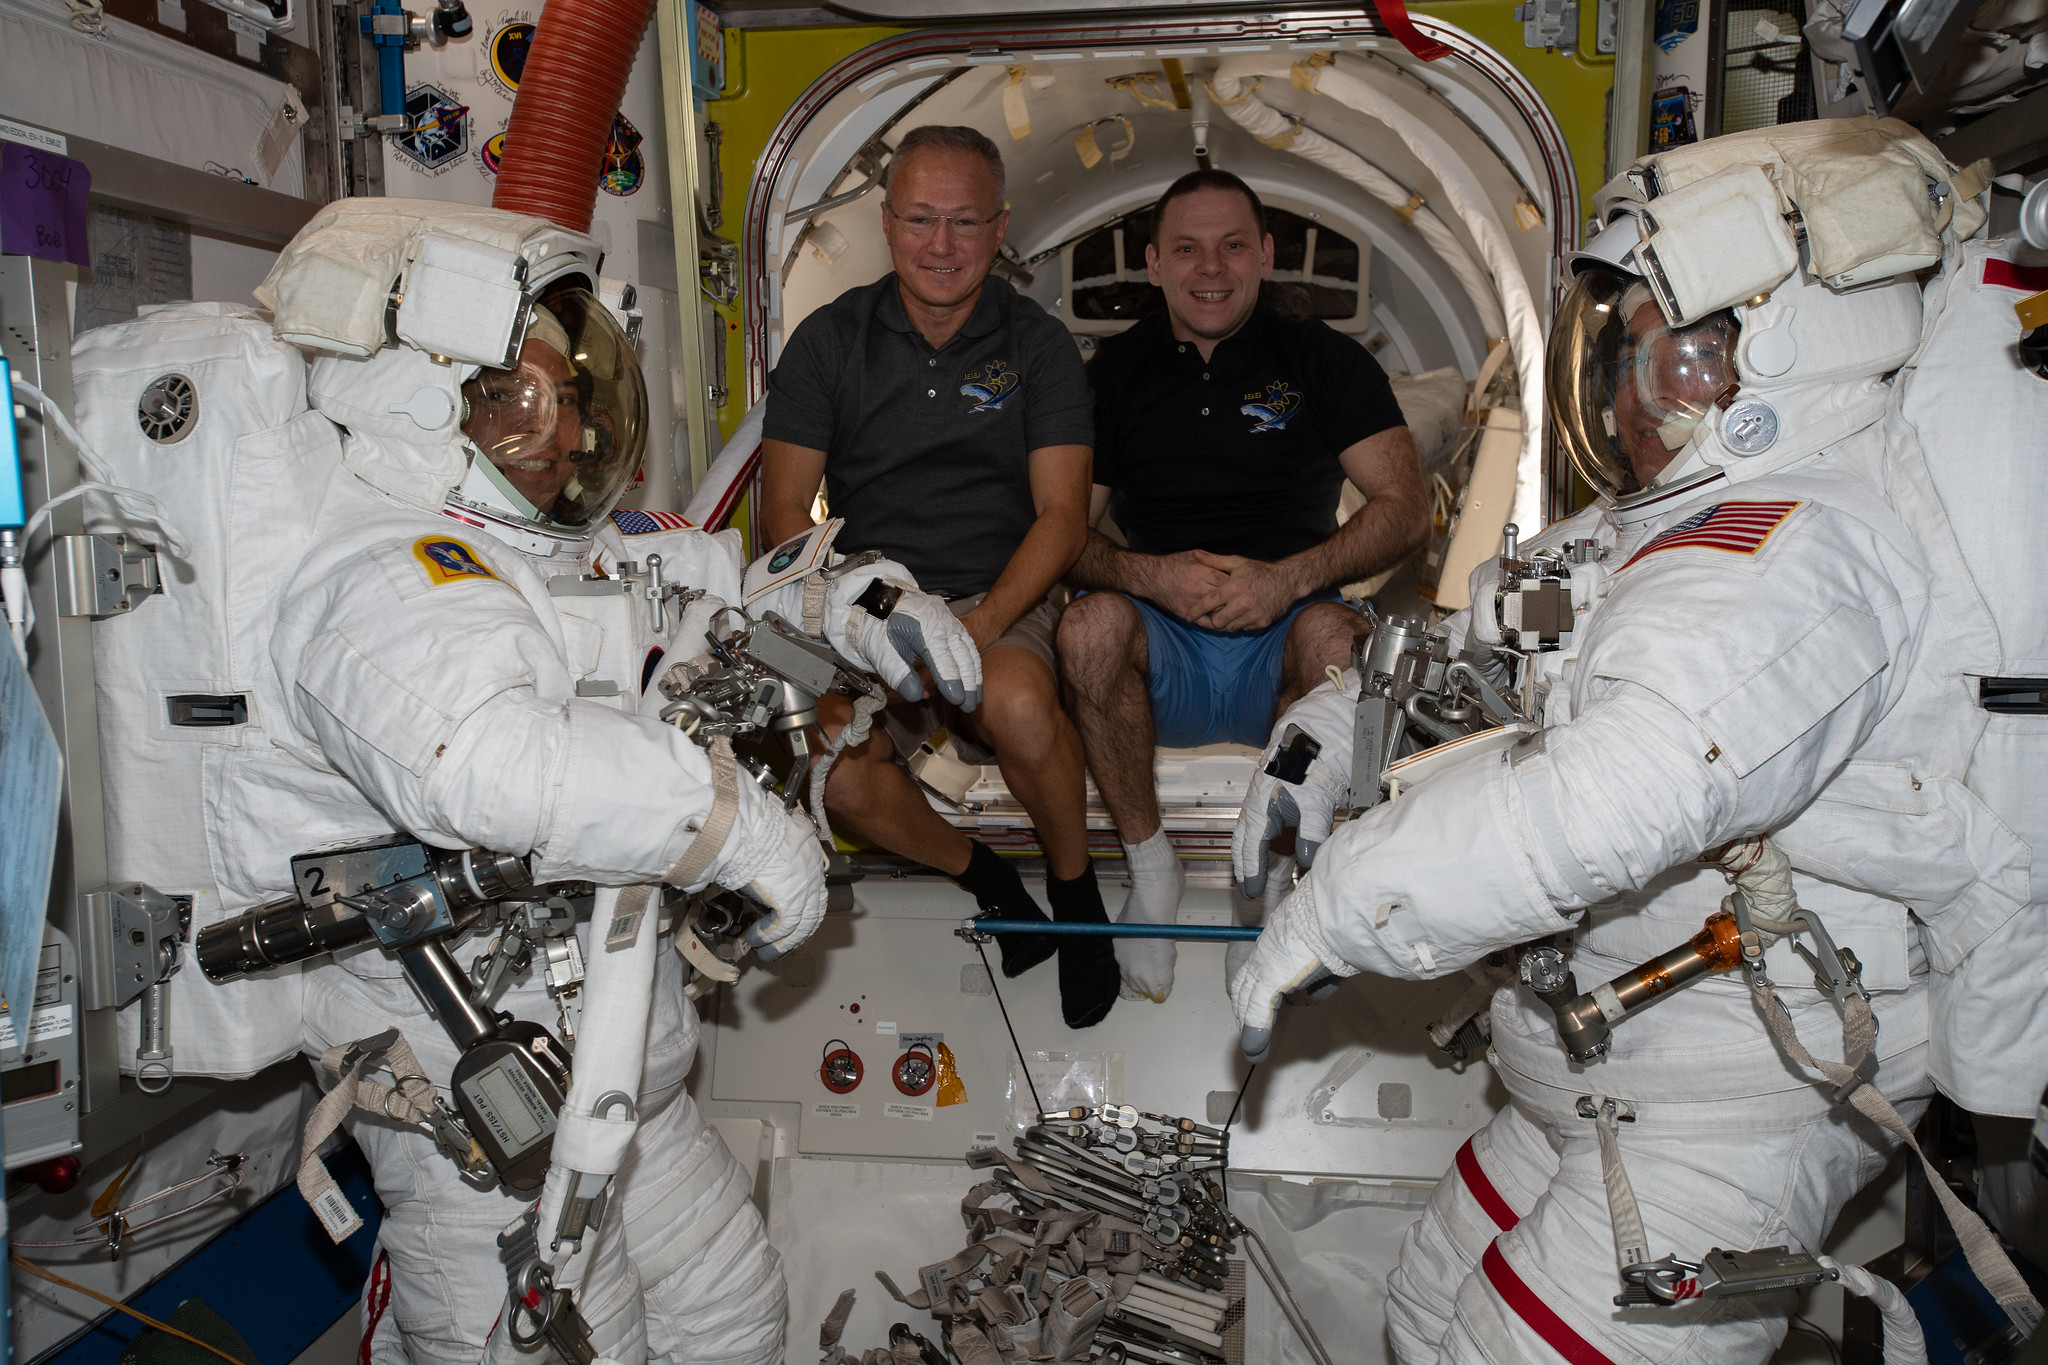 Spacewalkers Bob Behnken (far left) and Chris Cassidy (far right) are suited up ahead of their June 26 spacewalk.